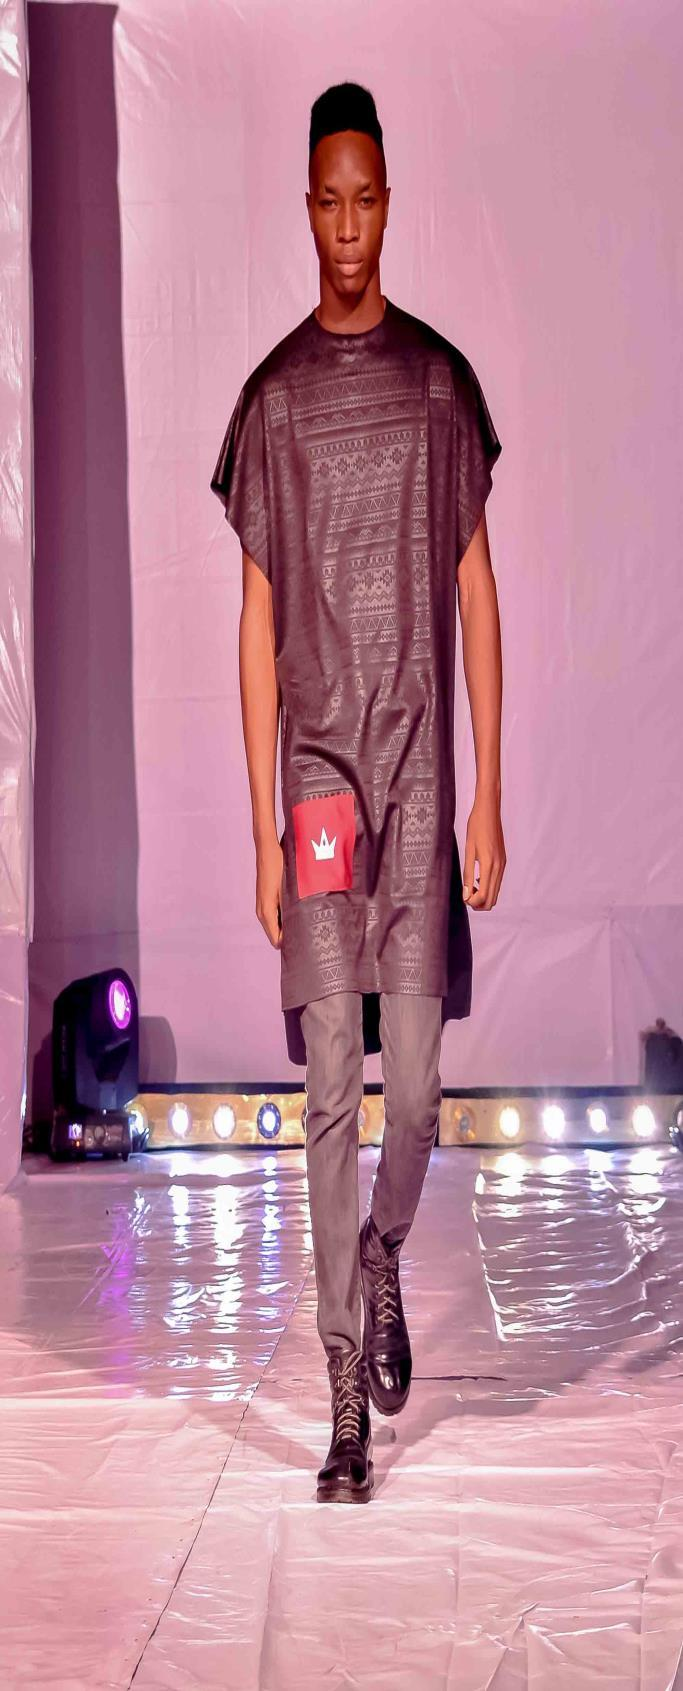 VISION The Lagos Urban Fashion Show 2018 is focused on uniting the international and Nigerian street wear designers, providing them with an opportunity to showcase their collections on a professional